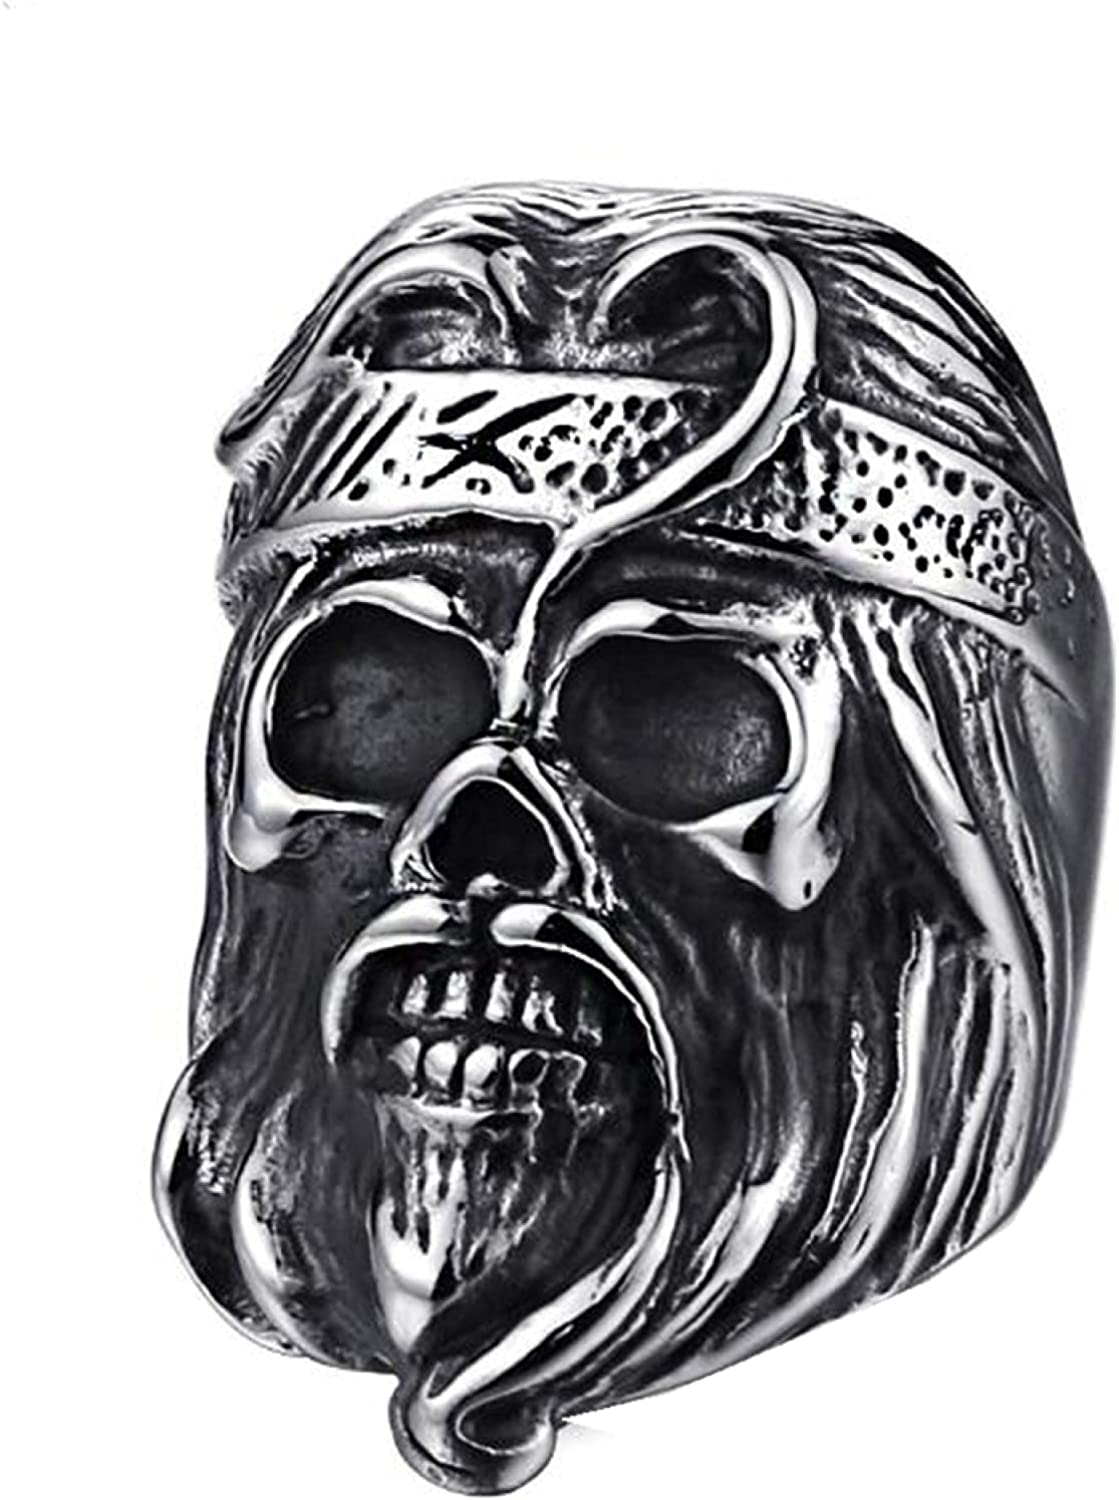 Stainless Steel Gifts Vintage Skeleton Skull OFFicial mail order Rock Ring Jewellery Punk